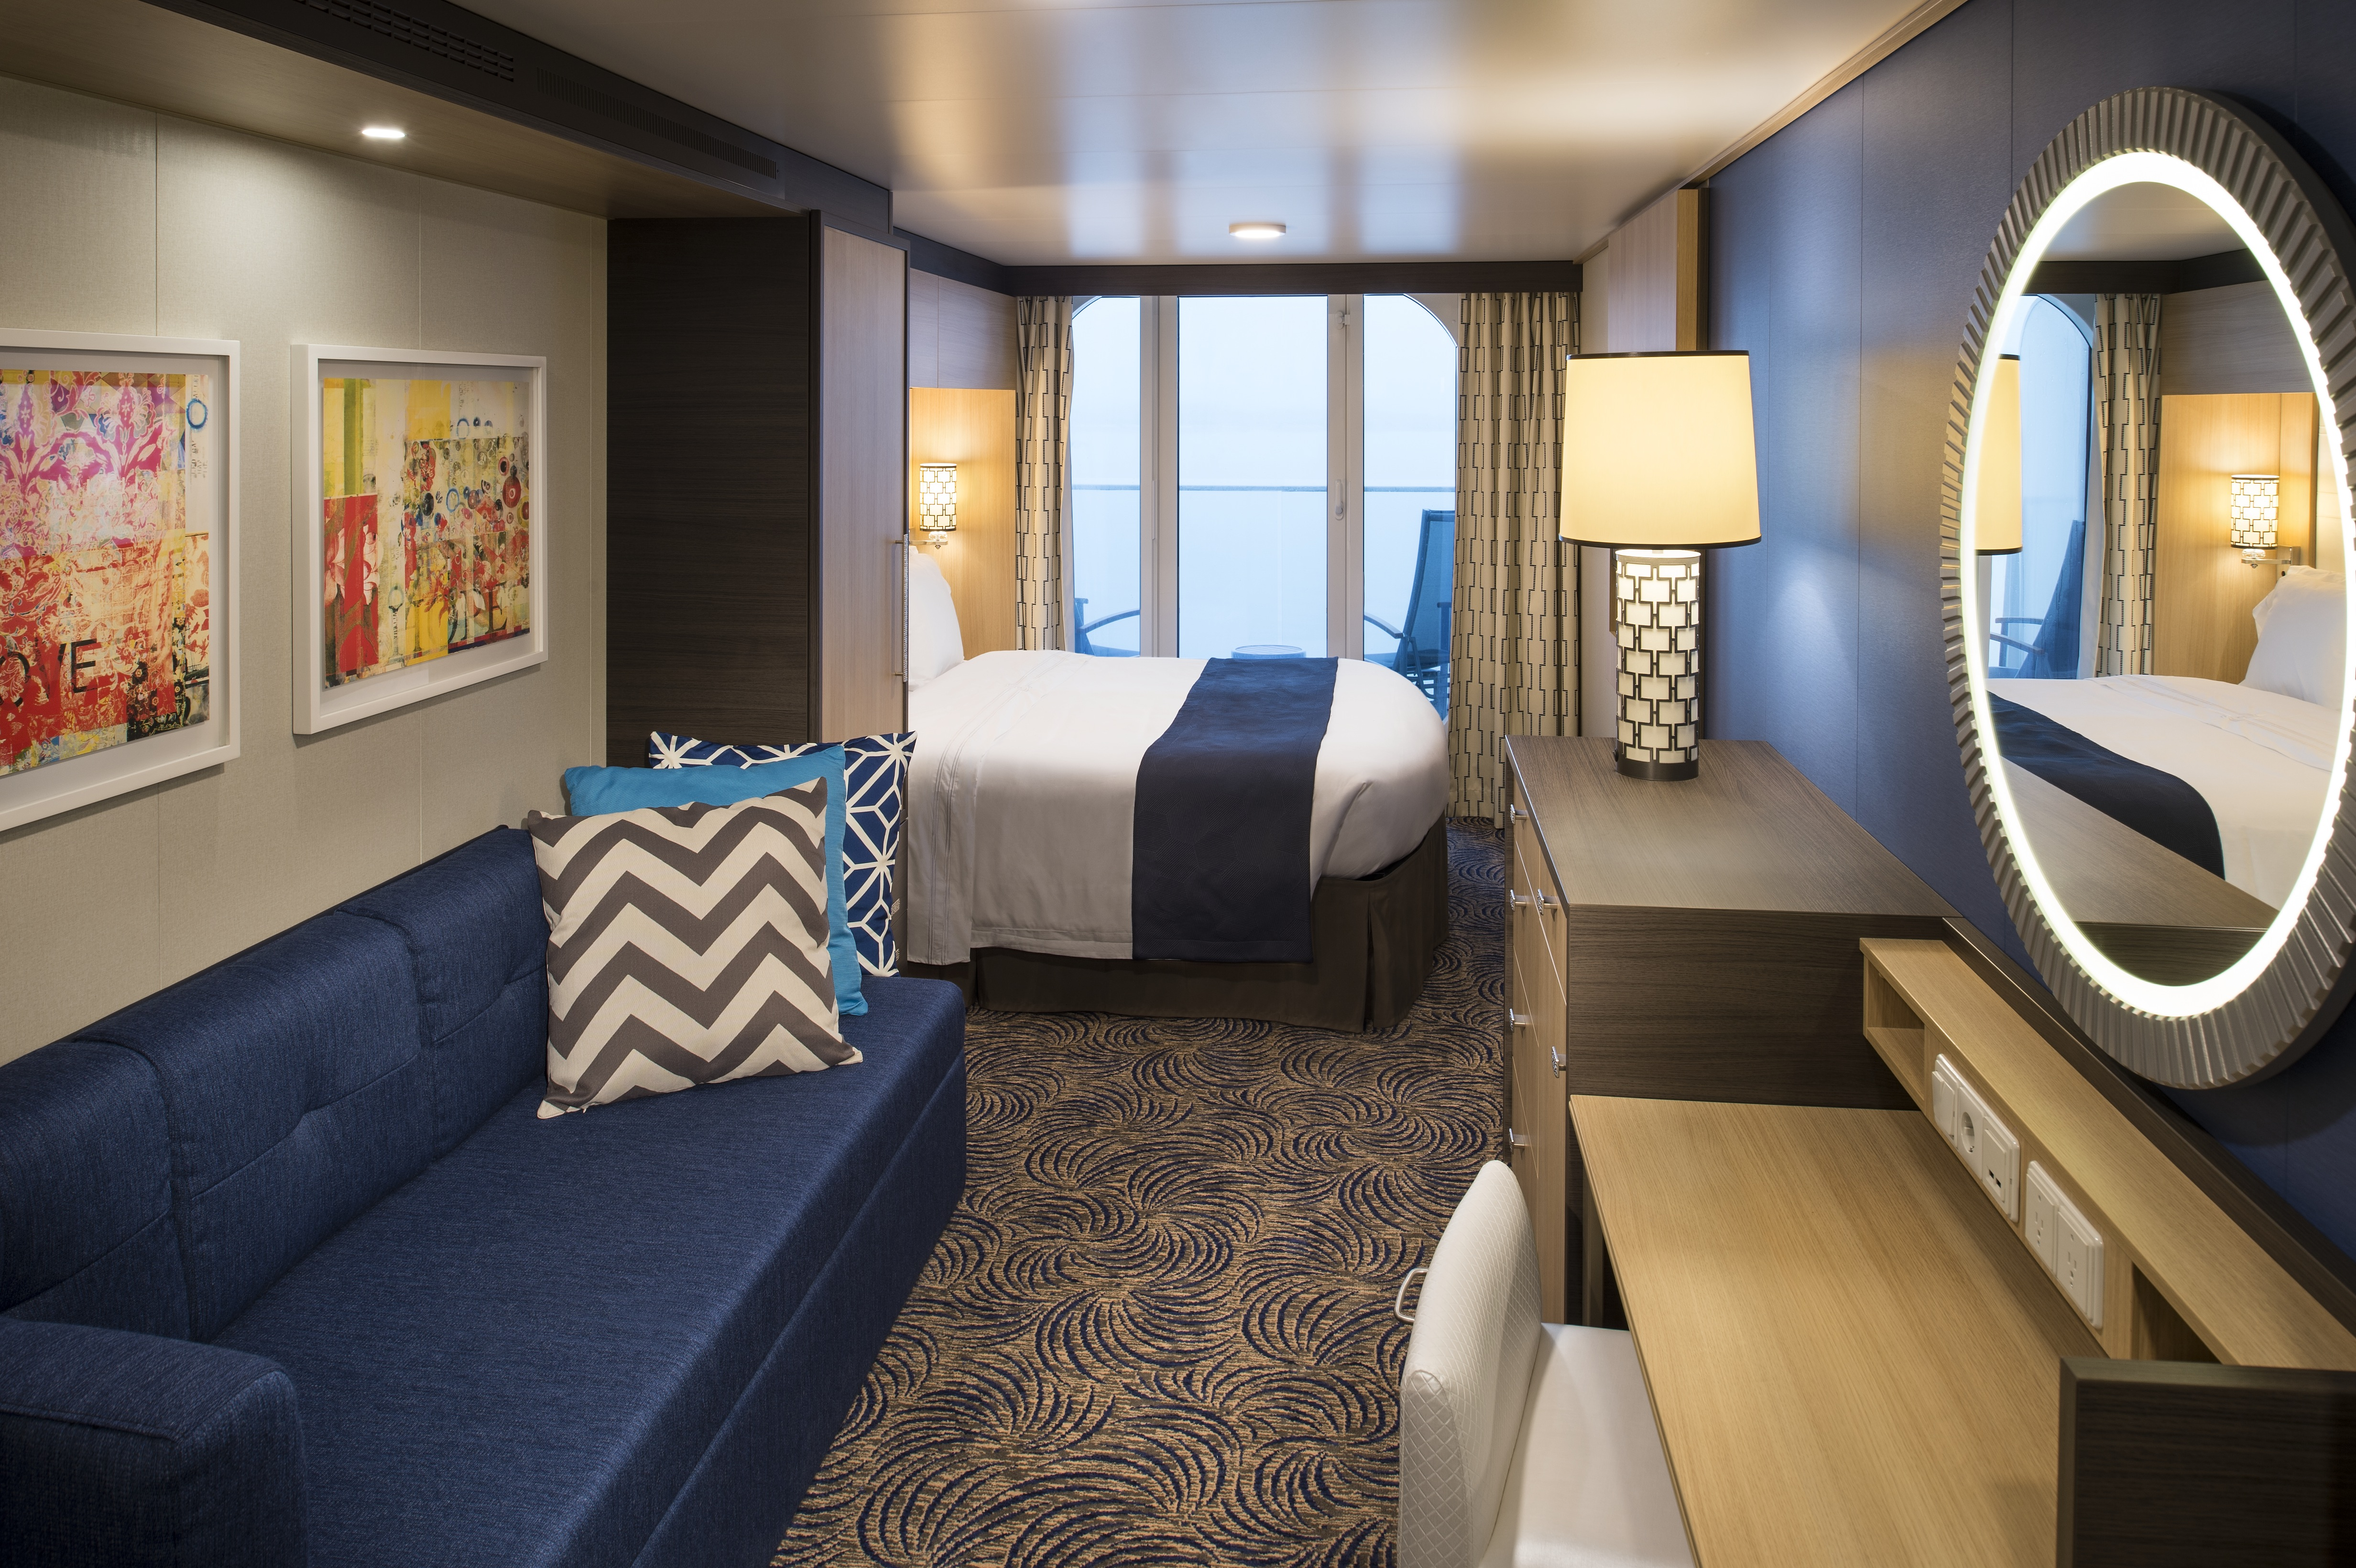 Royal Caribbean International Quantum of the Seas Accommodation Ocean View Balcony.jpg